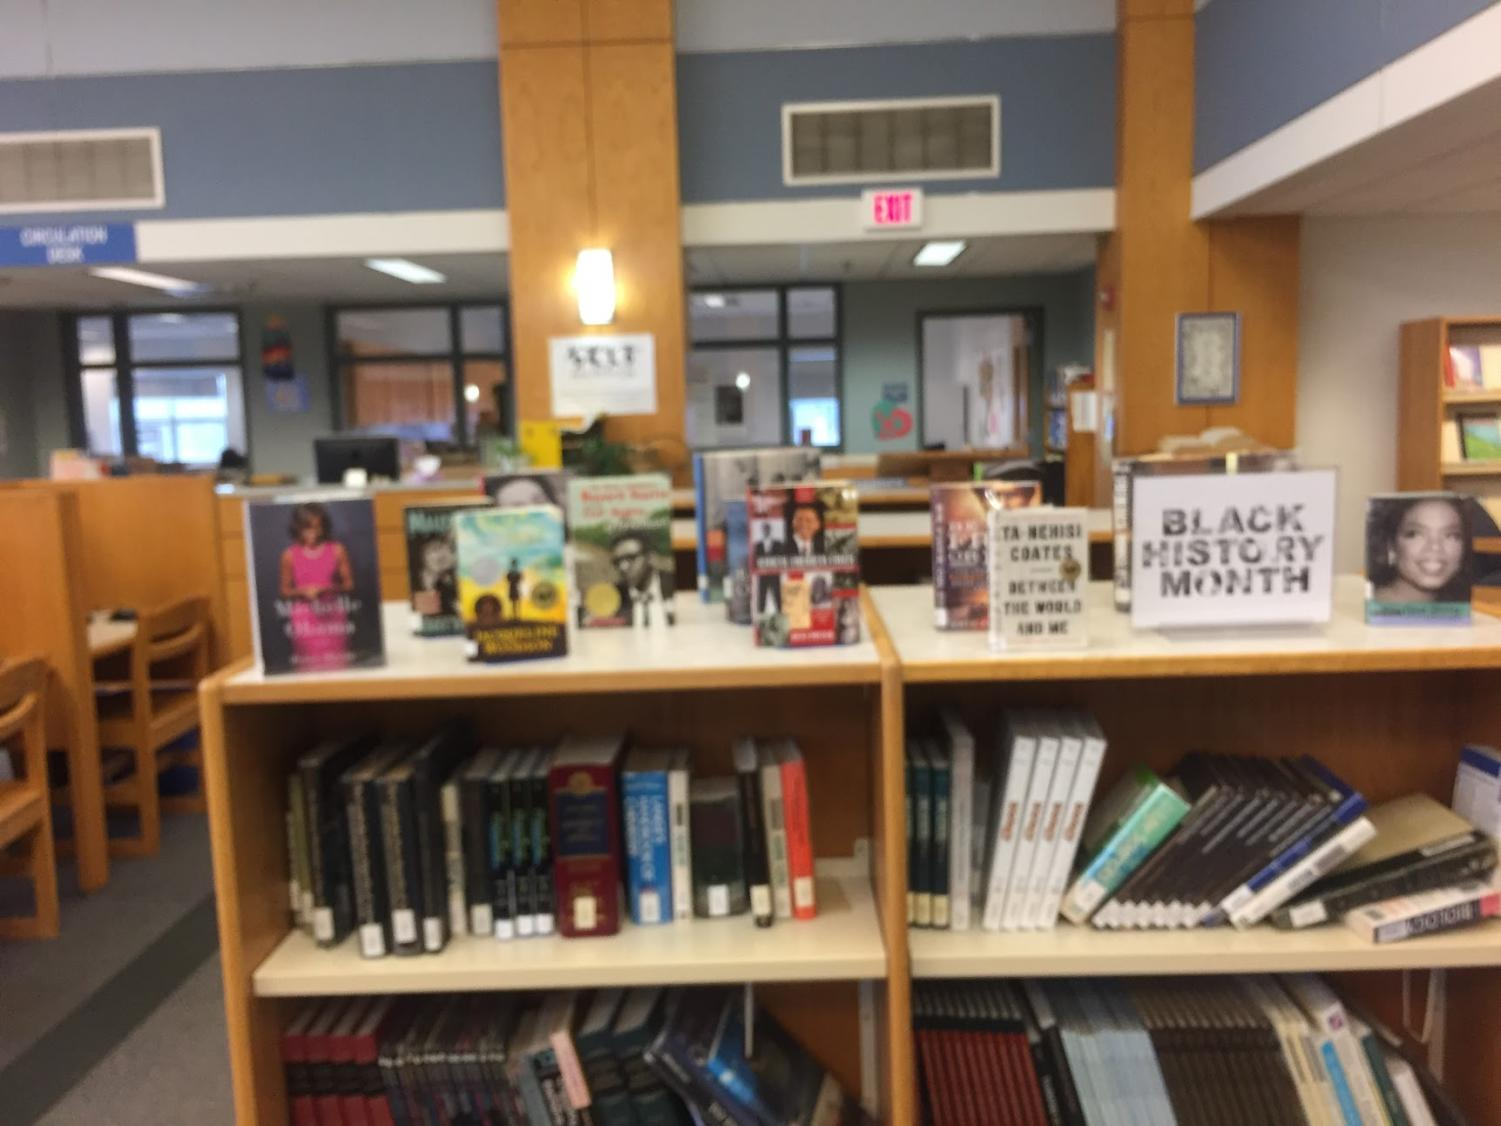 The Hingham Highschool Library has set up a display for black history month.